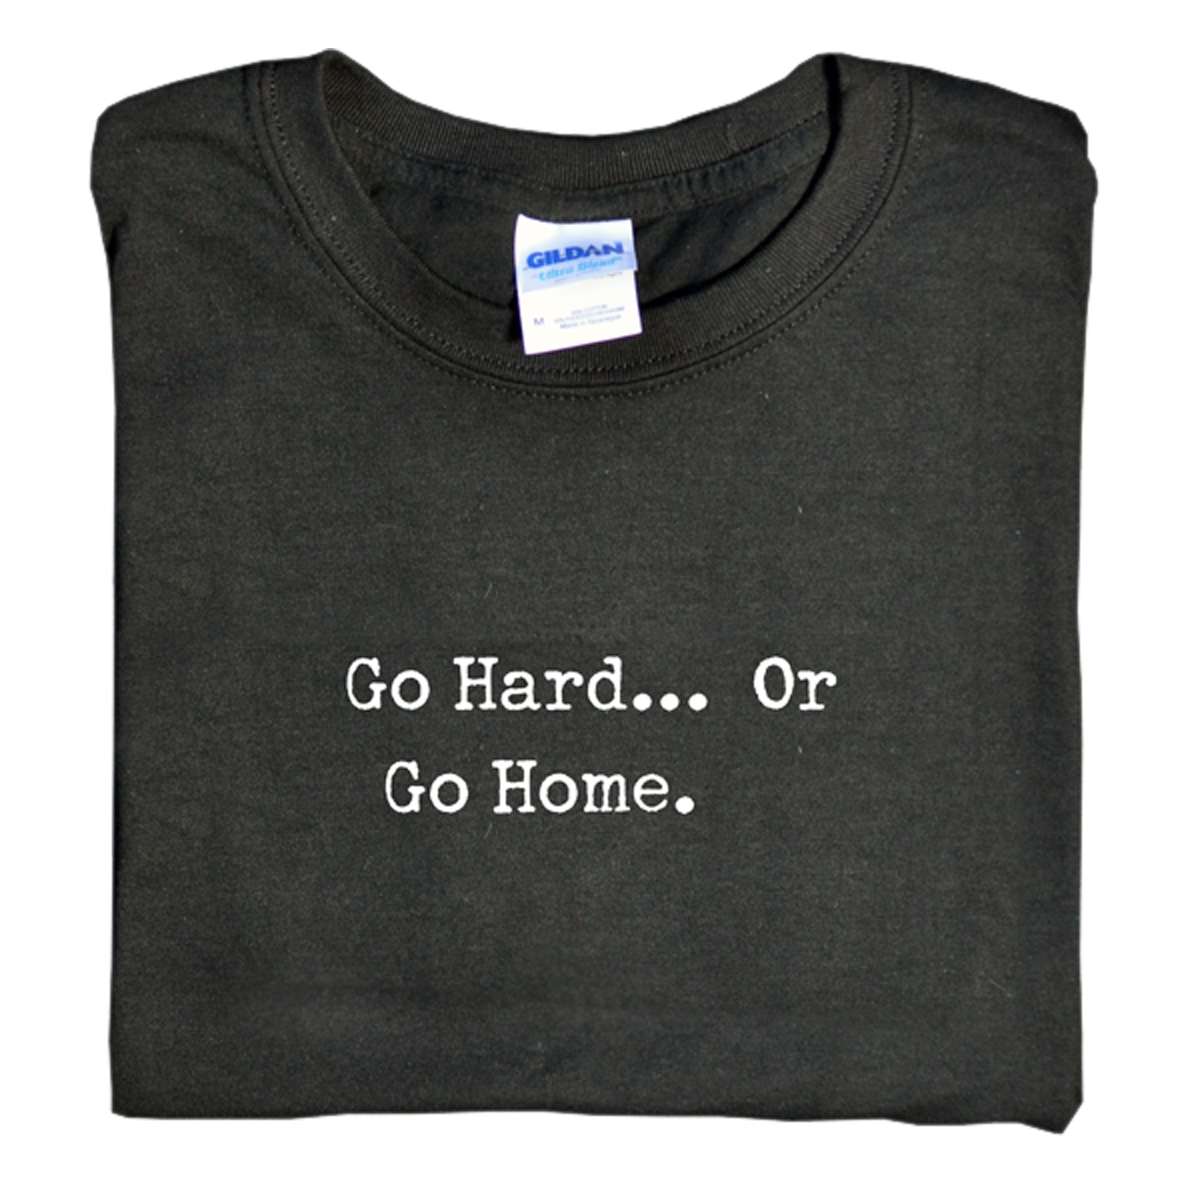 Black Go Hard Or Go Home T-Shirt Large By Universal Nutrition